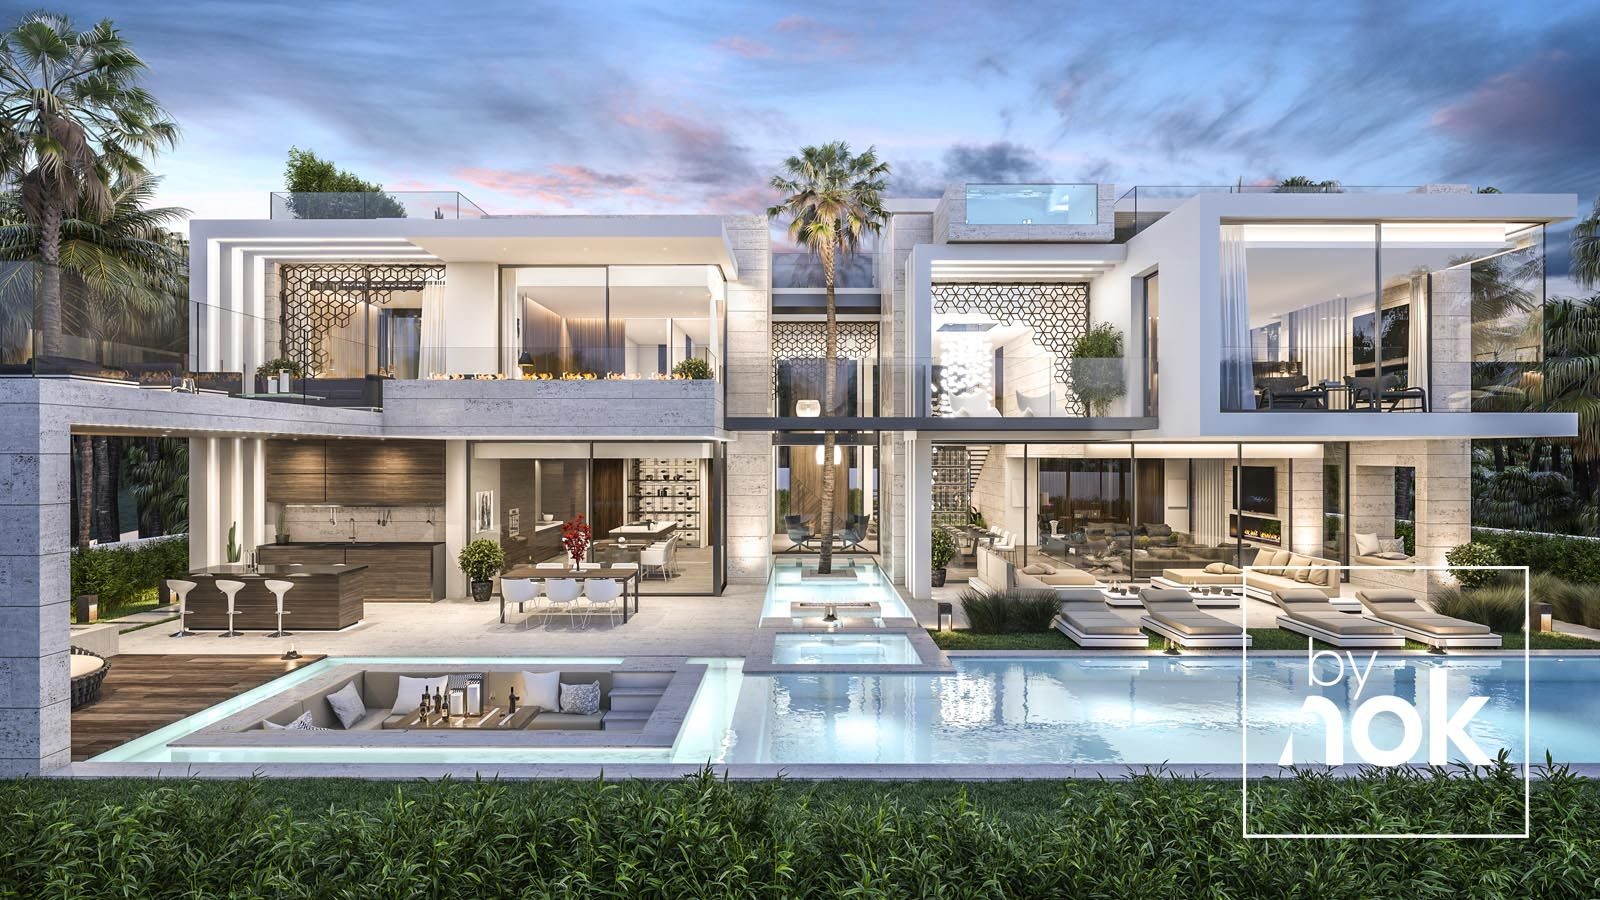 Architecture & Construction Definition Architecture And Construction Luxury Villa In Benahavis